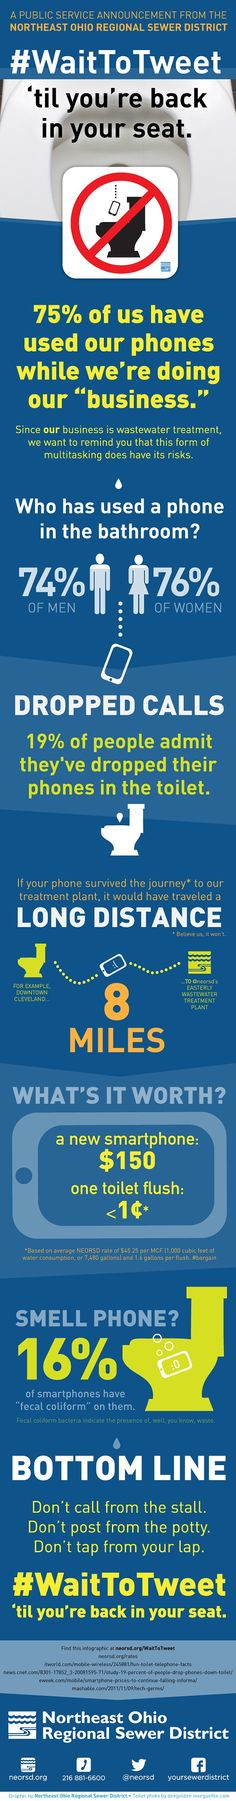 The Sewer District Would Like to Remind You to Not Use Your Phone While on the Toilet | Scene and Heard: Scene's News Blog